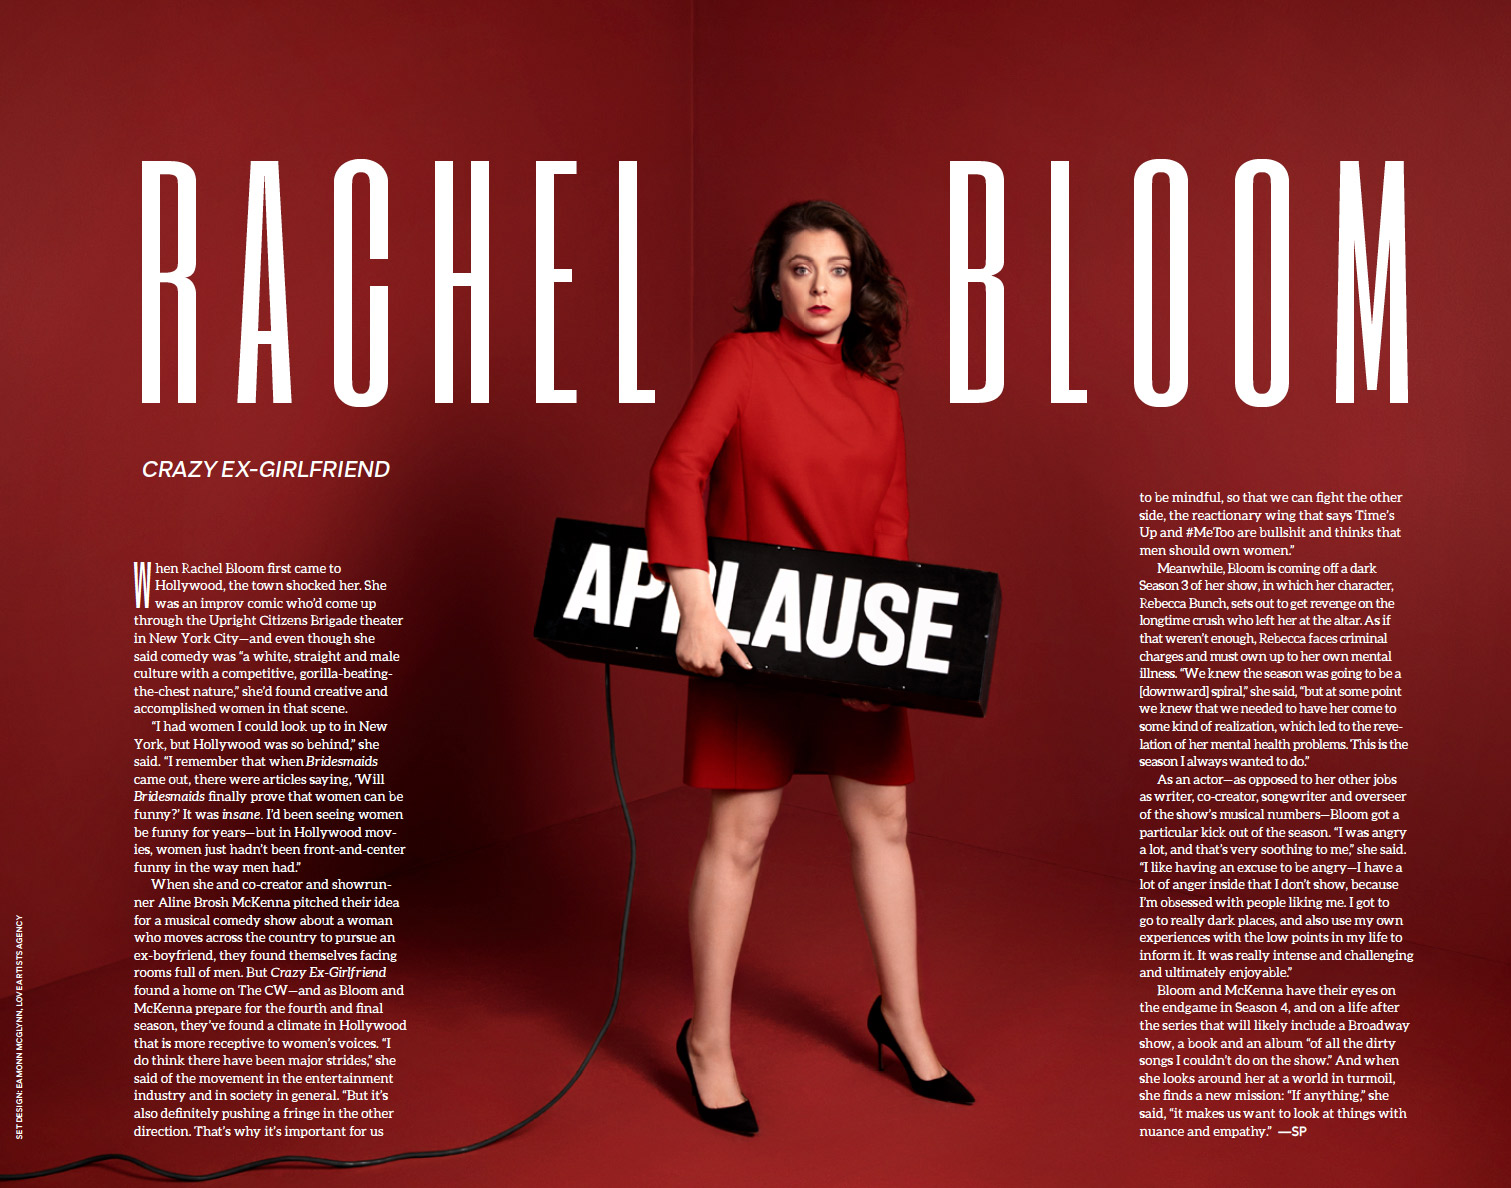 RACHEL-BLOOM-THE-WRAP-tear-sheet